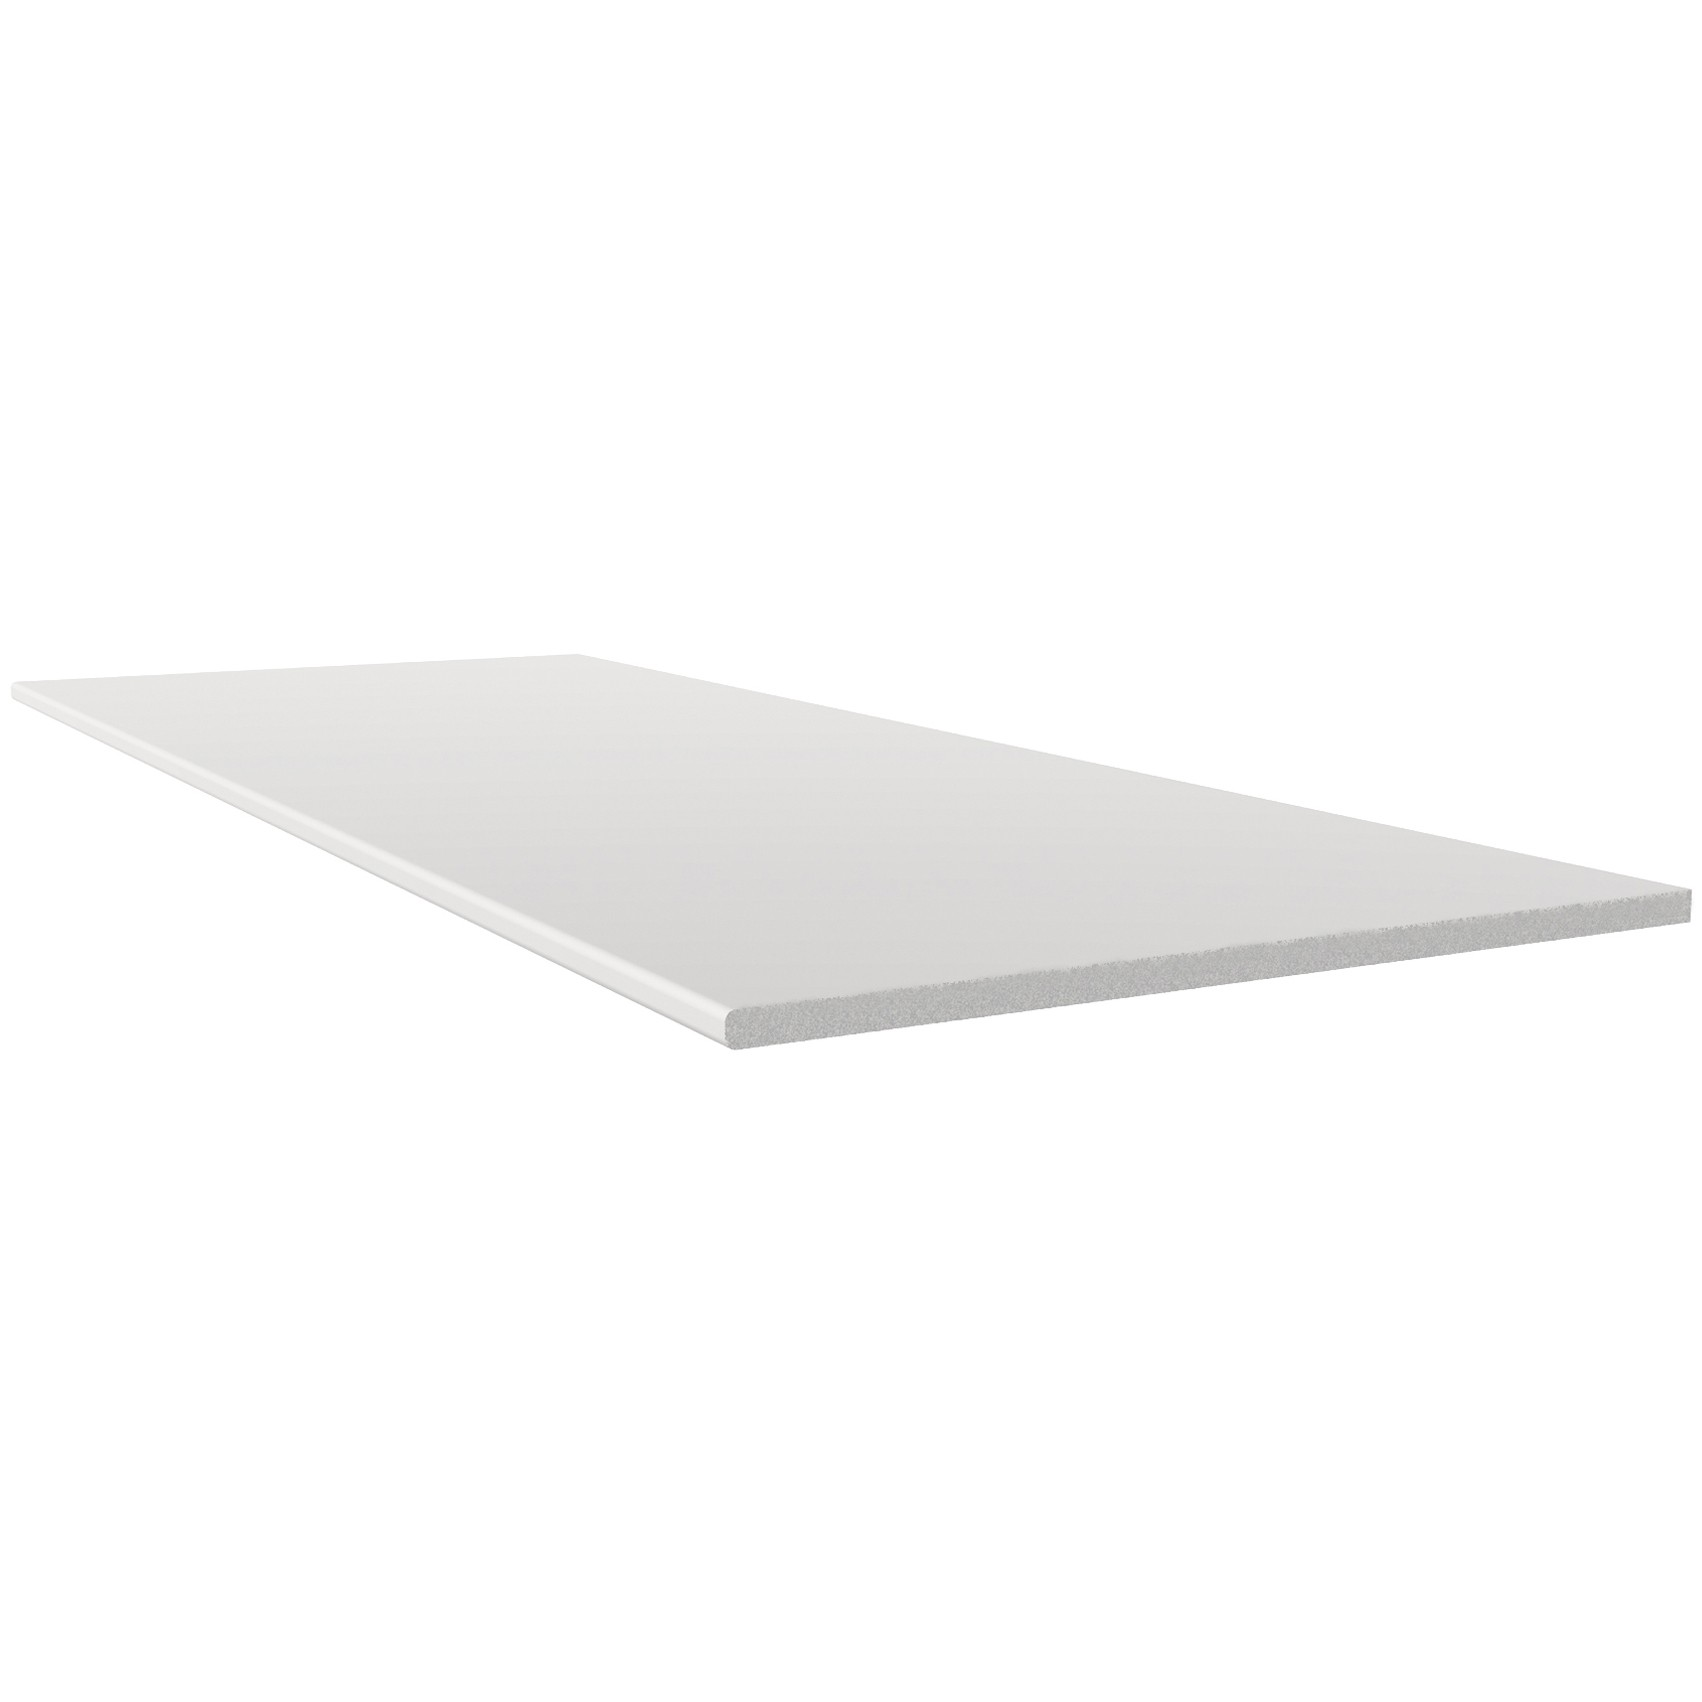 Freefoam 10mm Solid Soffit Board - White, 250mm, 2.5 metre